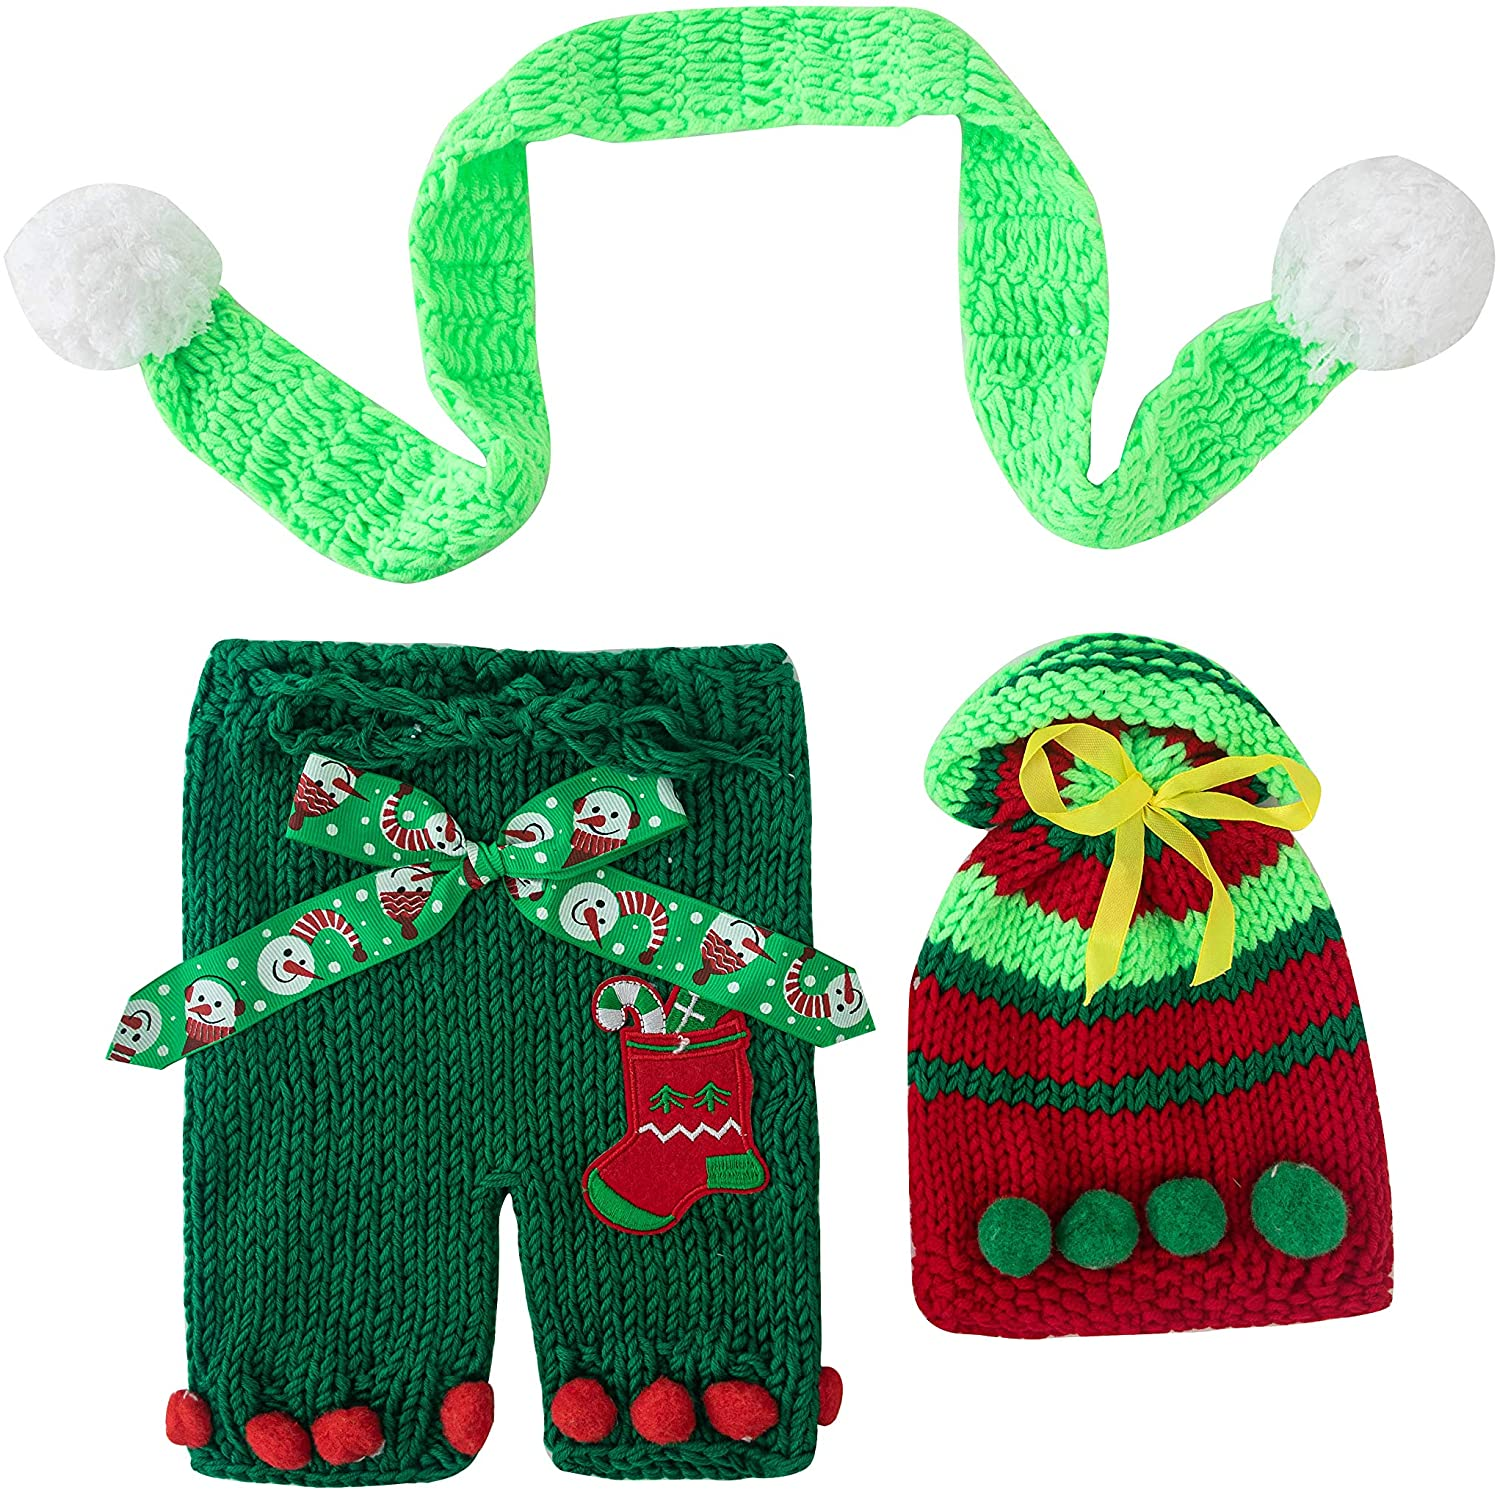 Newborn Photography Props Boys Girls Christmas Outfits Set, Baby Photo Props Handmade Hat with Pants Set